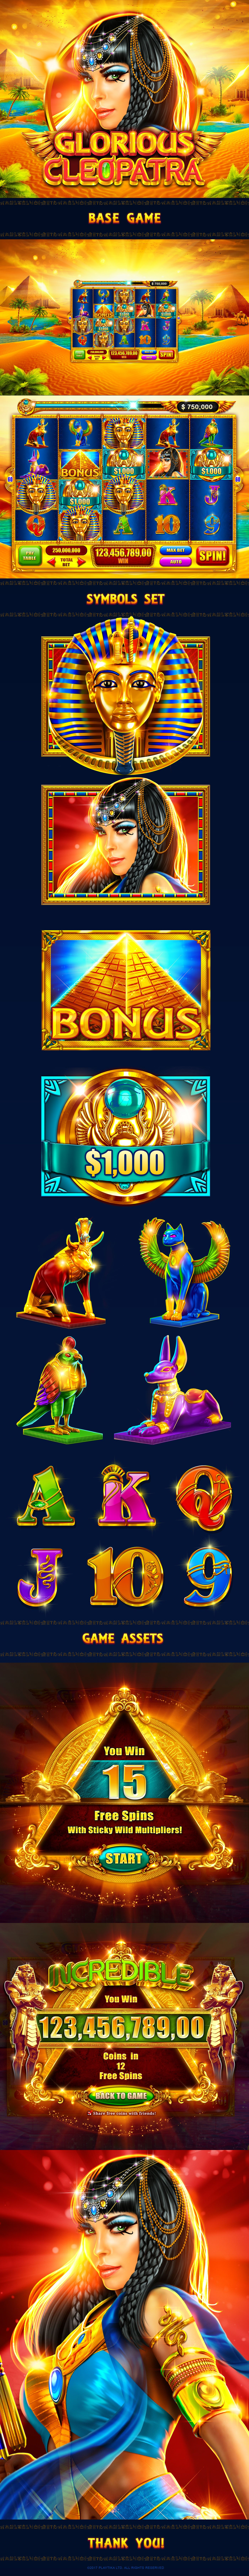 ART DIRECTION FOR SLOTOMANIA SLOT - GLORIOUS CLEOPATRA on Behance